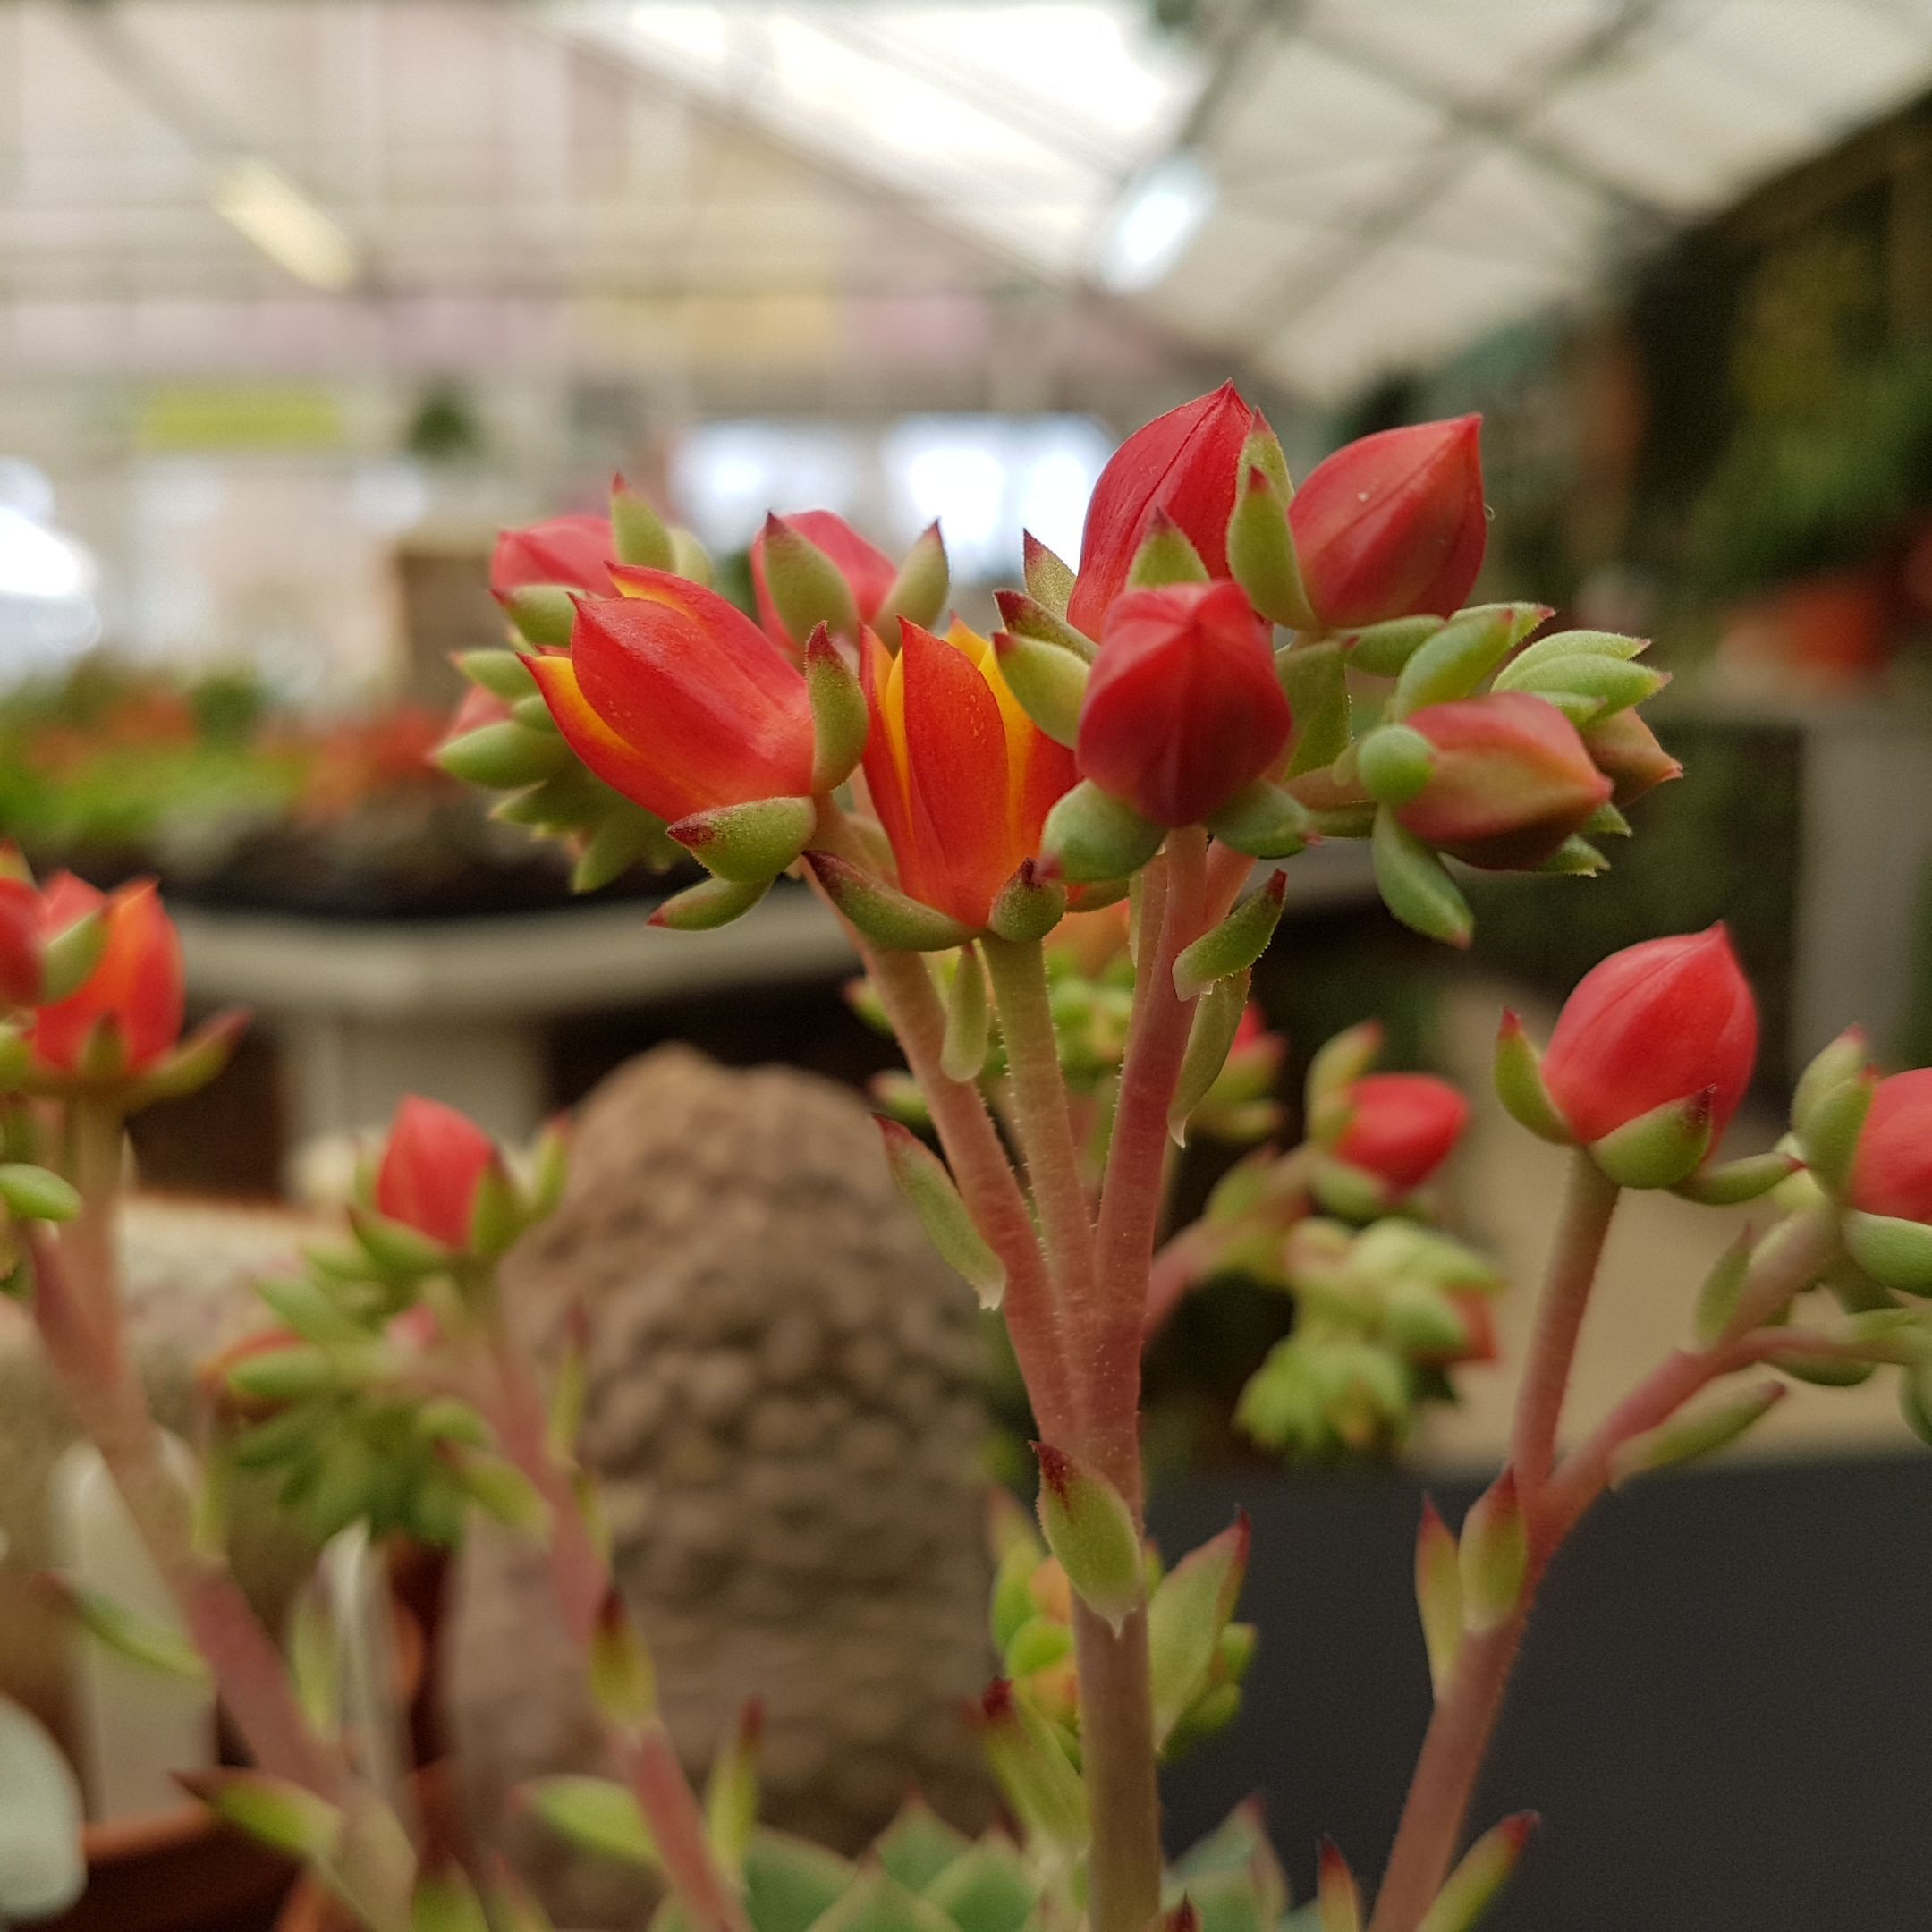 Echeveria Sp A Rather Vibrant Red And Yellow Flower To This Small